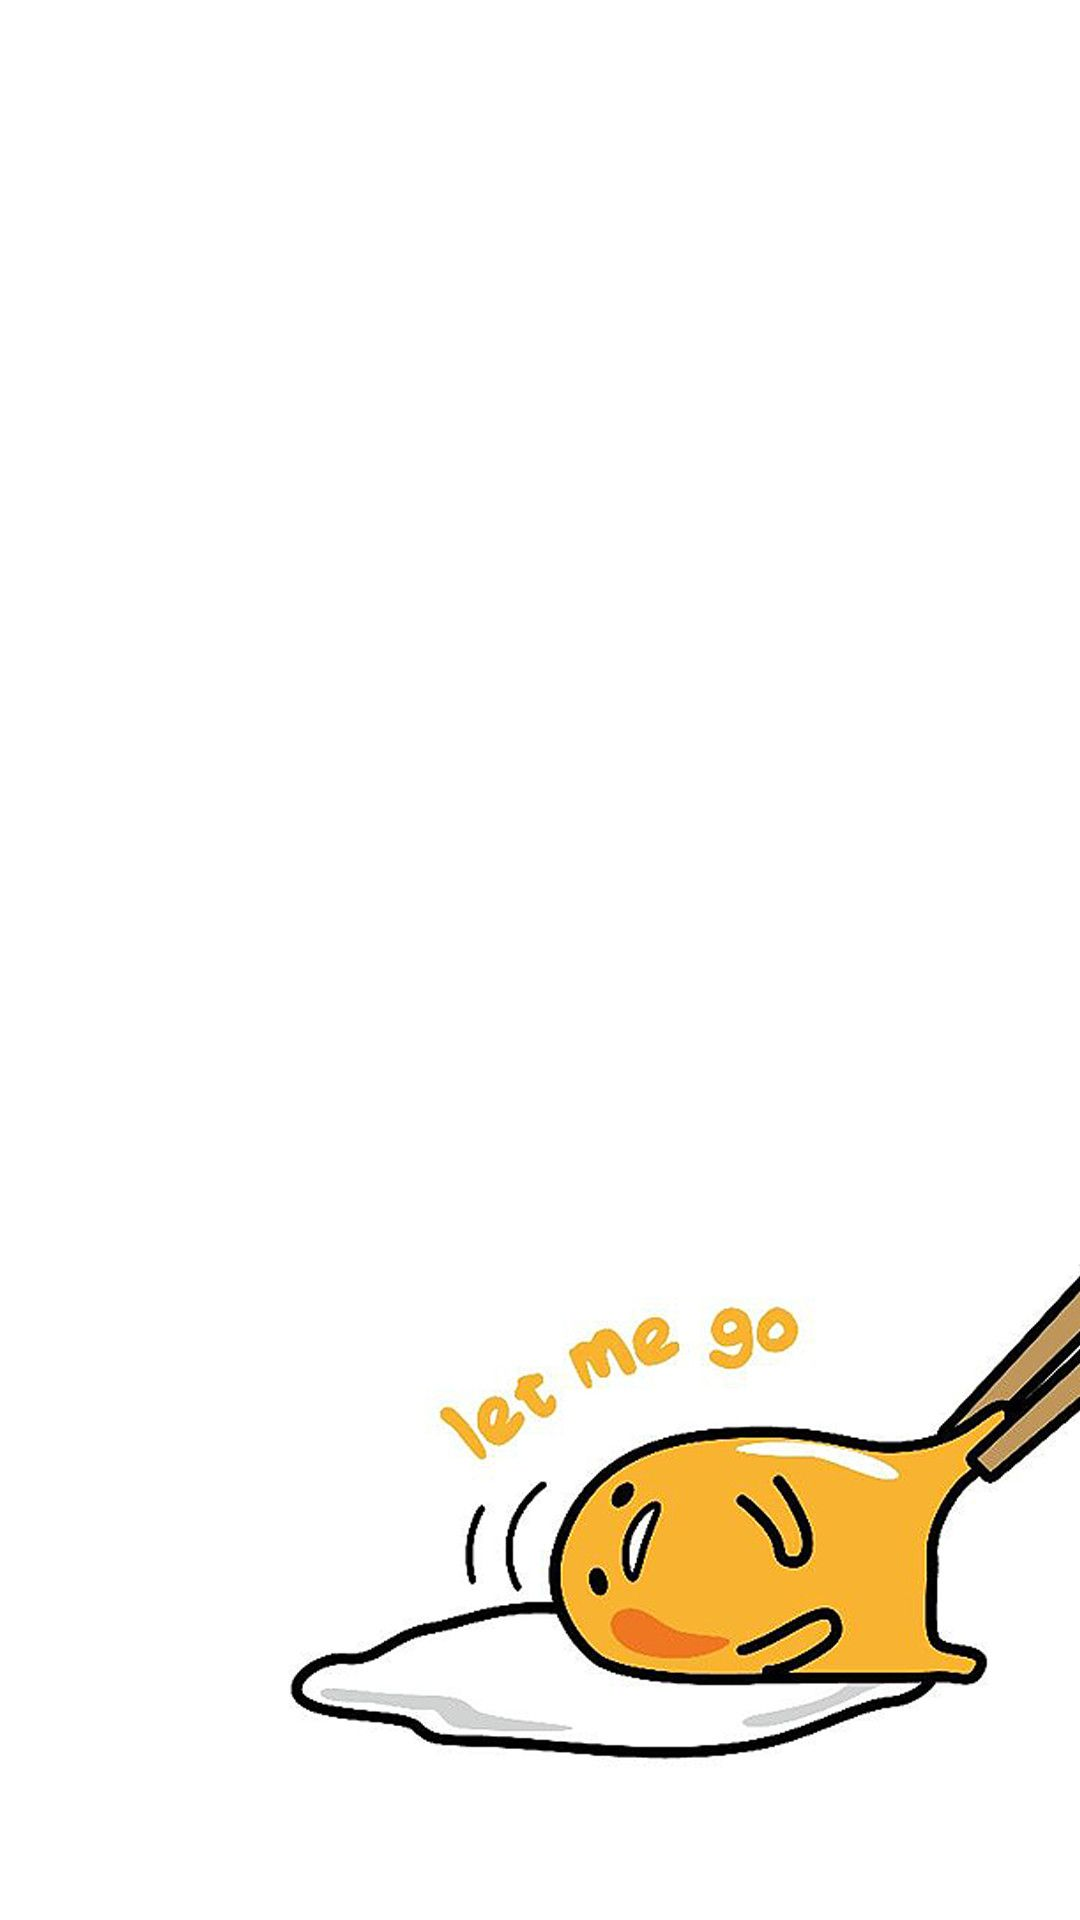 Gudetama Wallpapers 1080x1920 mac Sanrio wallpaper, Cute